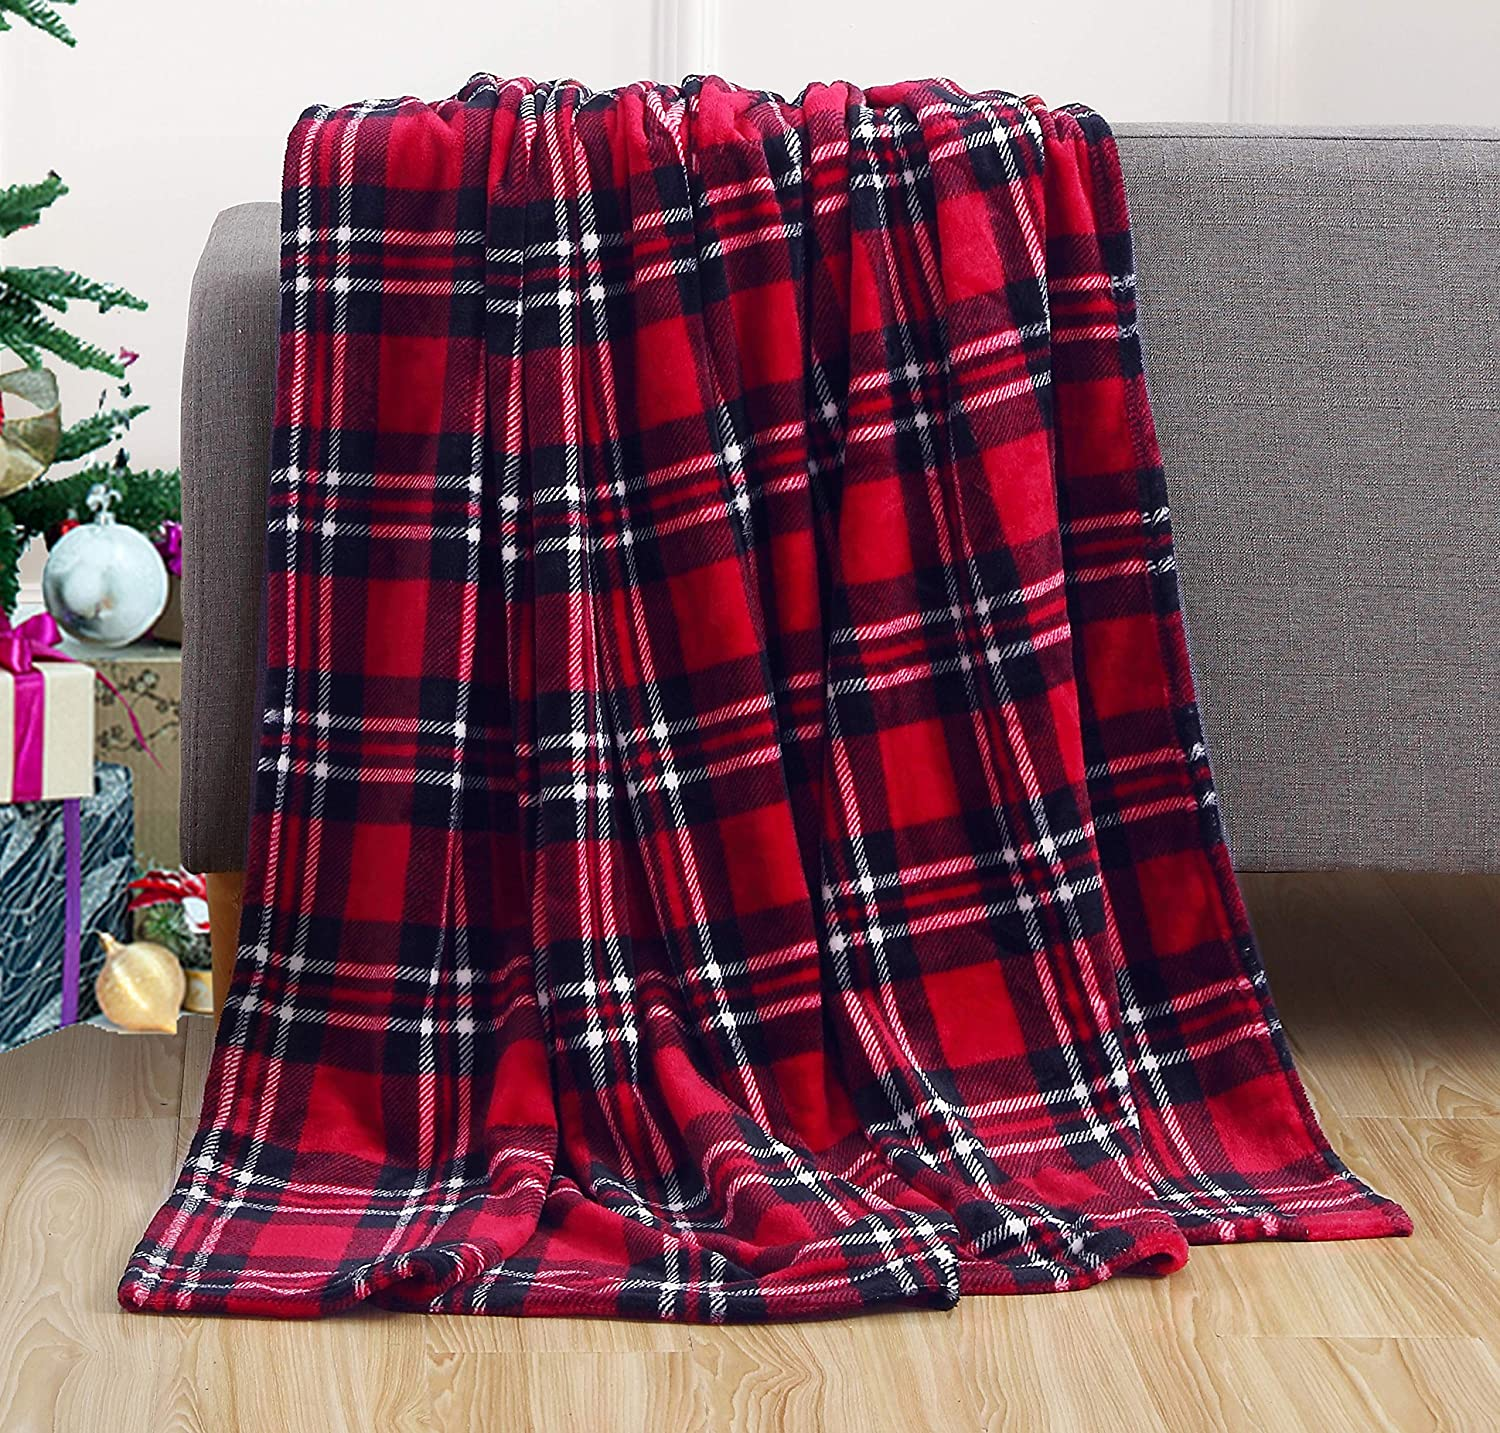 Elegant Comfort Luxury Velvet Super Soft Christmas Prints Fleece Blanket-Holiday Theme Home Décor Fuzzy Warm and Cozy Throws for Winter Bedding, Couch and Gift, 50 x 60 inch, Plaid